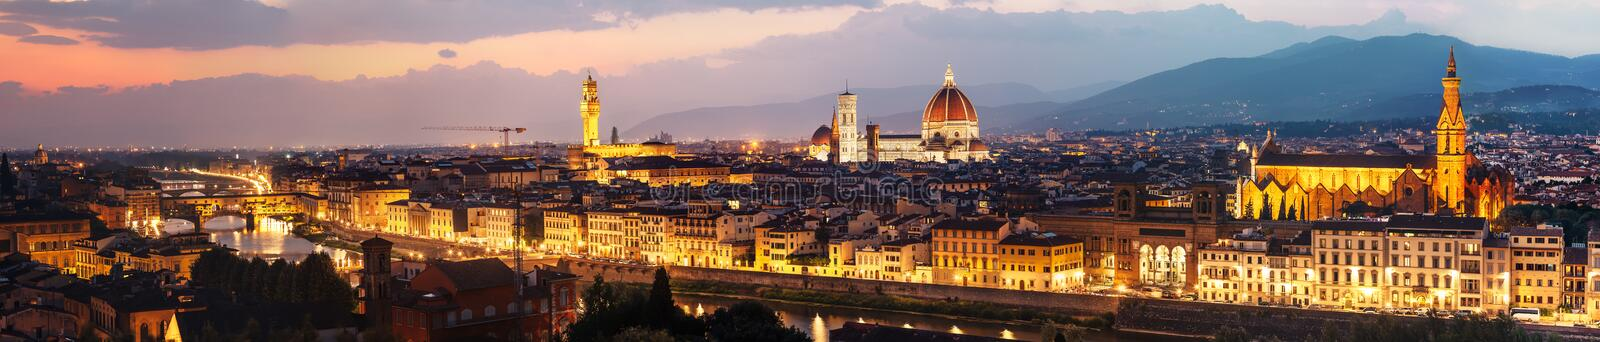 Evening panorama of Florence city skyline stock images